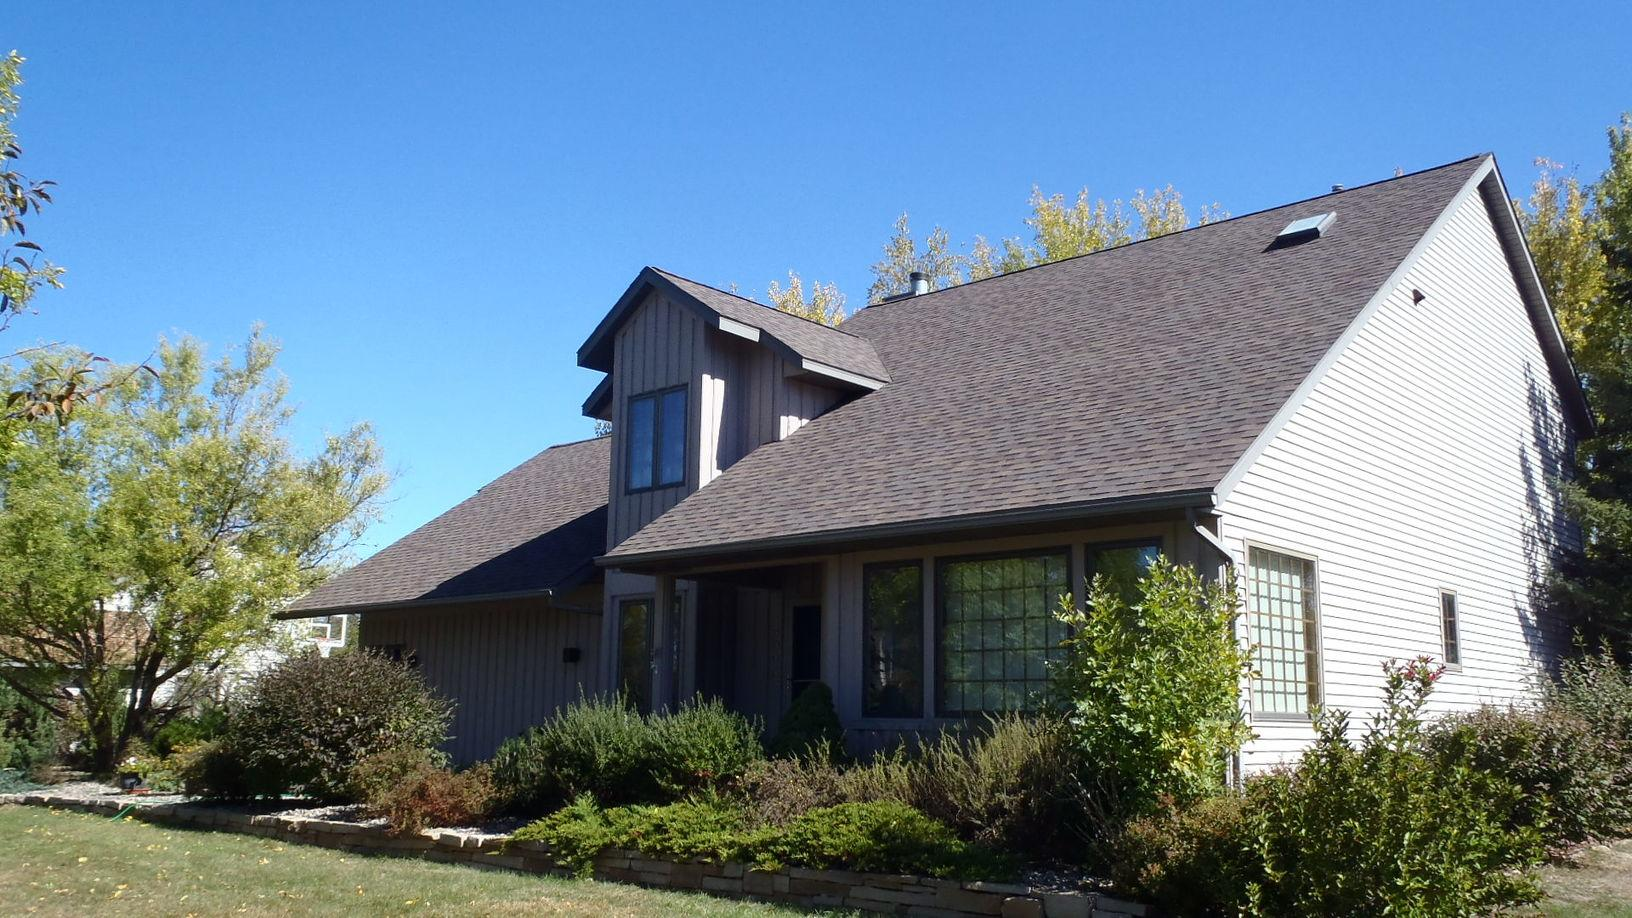 Roof Replacement in Wausau WI - After Photo